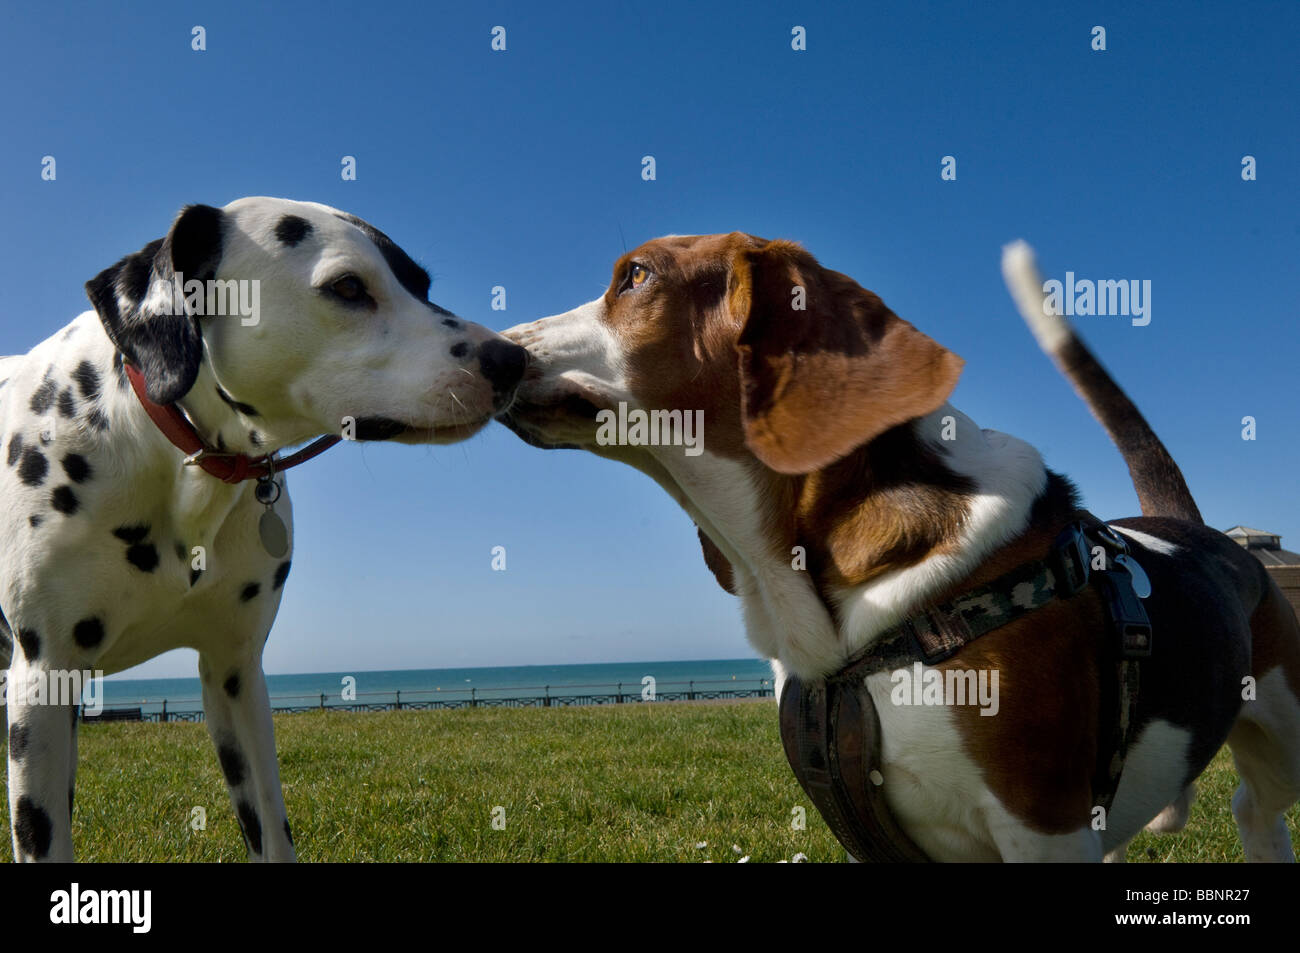 A dalmatian and a Bassett Hound make friends during a walk on Hove Lawns, on the seafront at Hove. Stock Photo